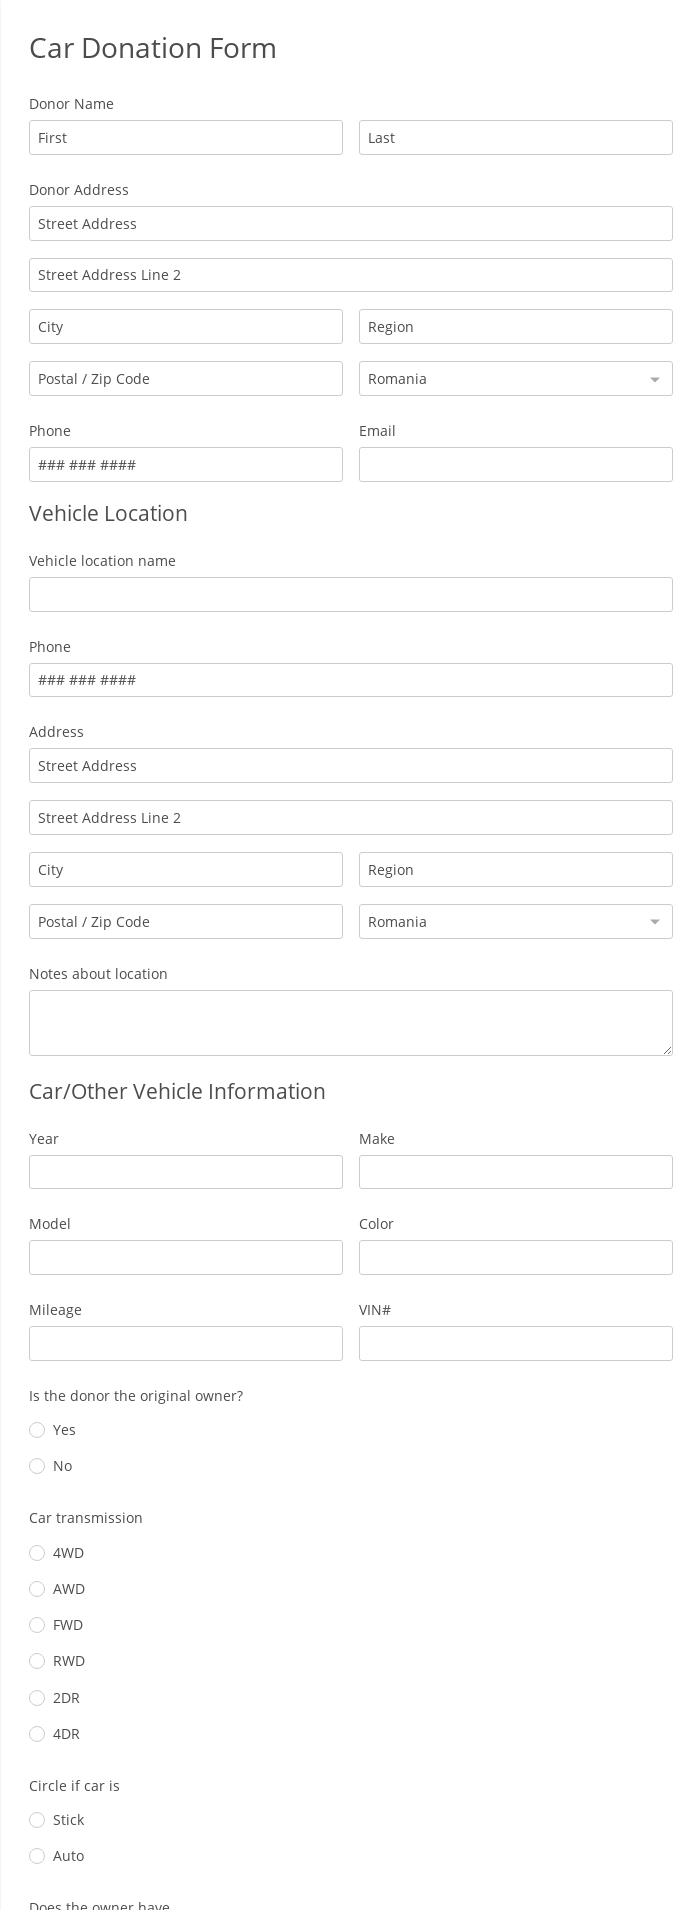 Car Donation Form